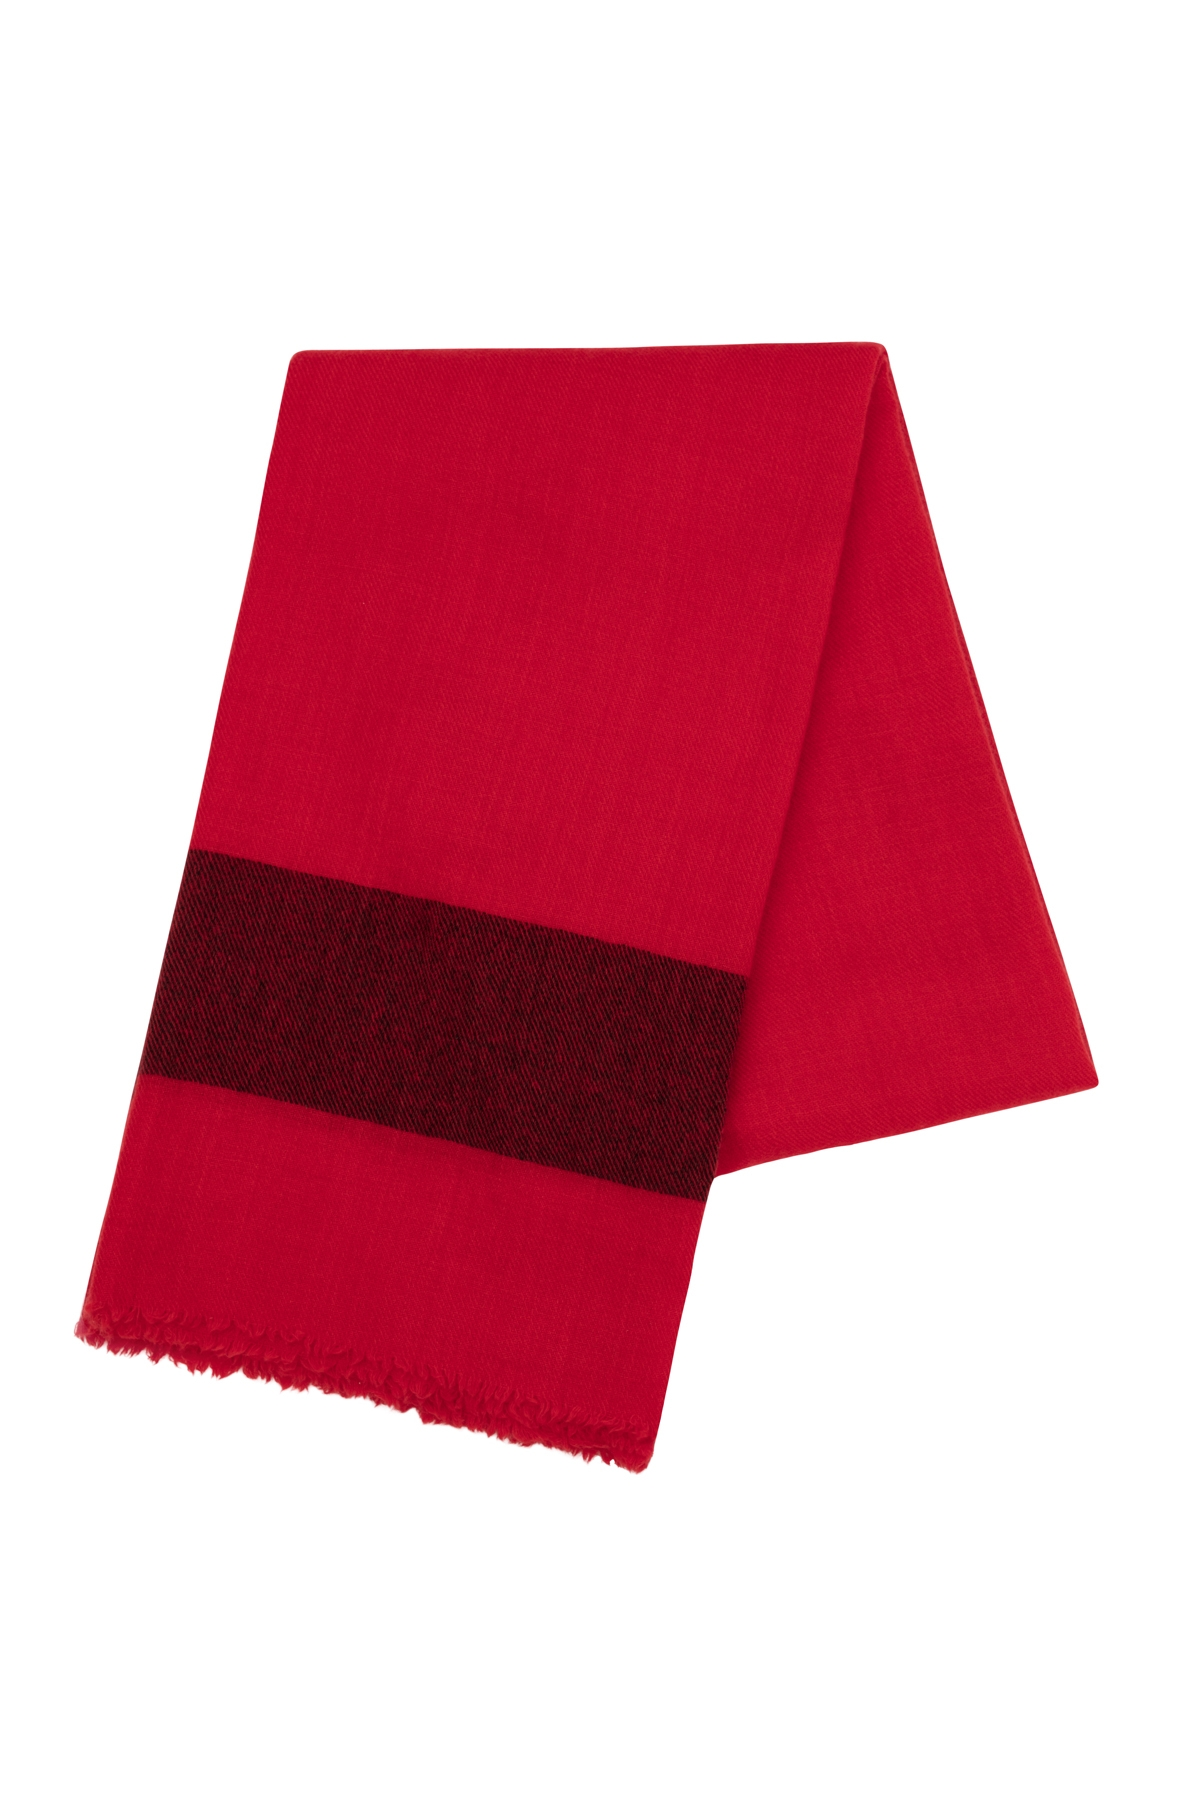 AMANDA WAKELEY RED STRIPE CASHMERE SCARF